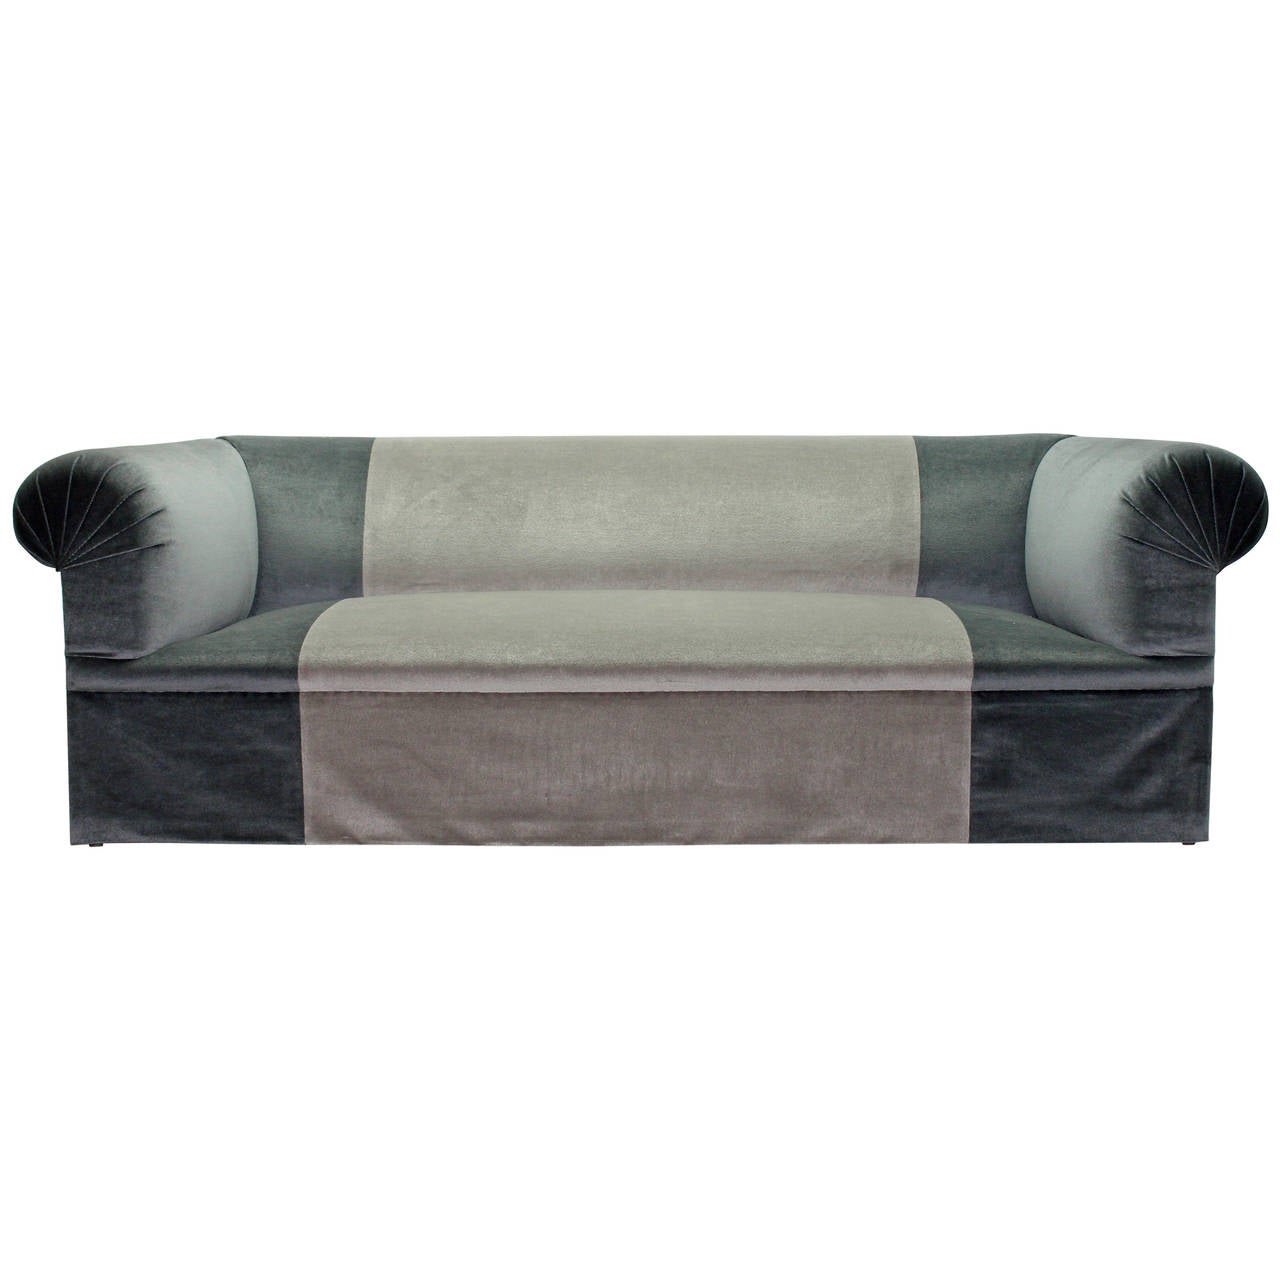 Long Deep And Very Comfortable Luxe Sofa In Two-Tone Blue